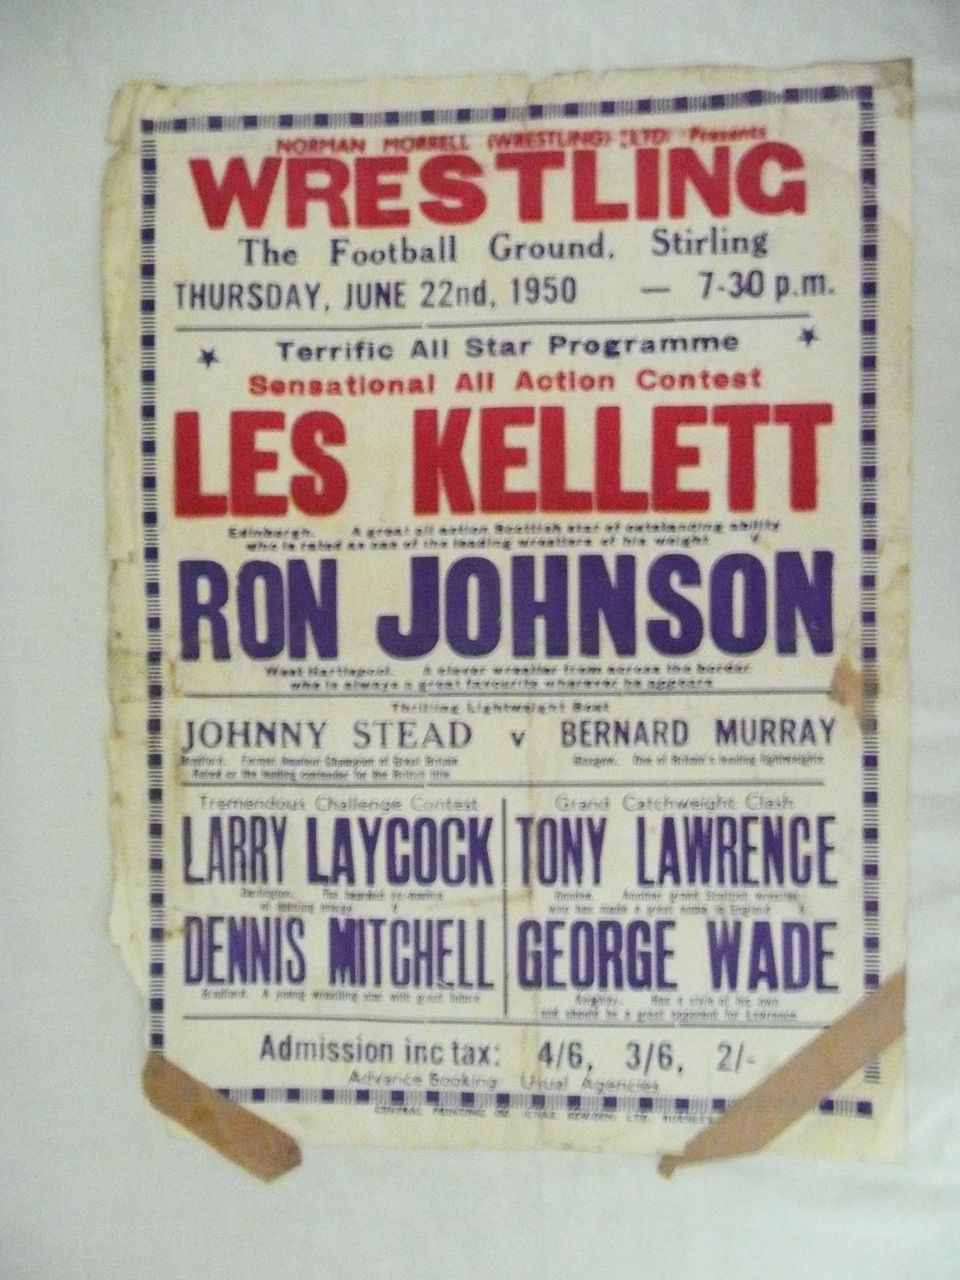 WRESTLING  - Genuine Old 1950 Advertising Poster - Stirling - Scotland